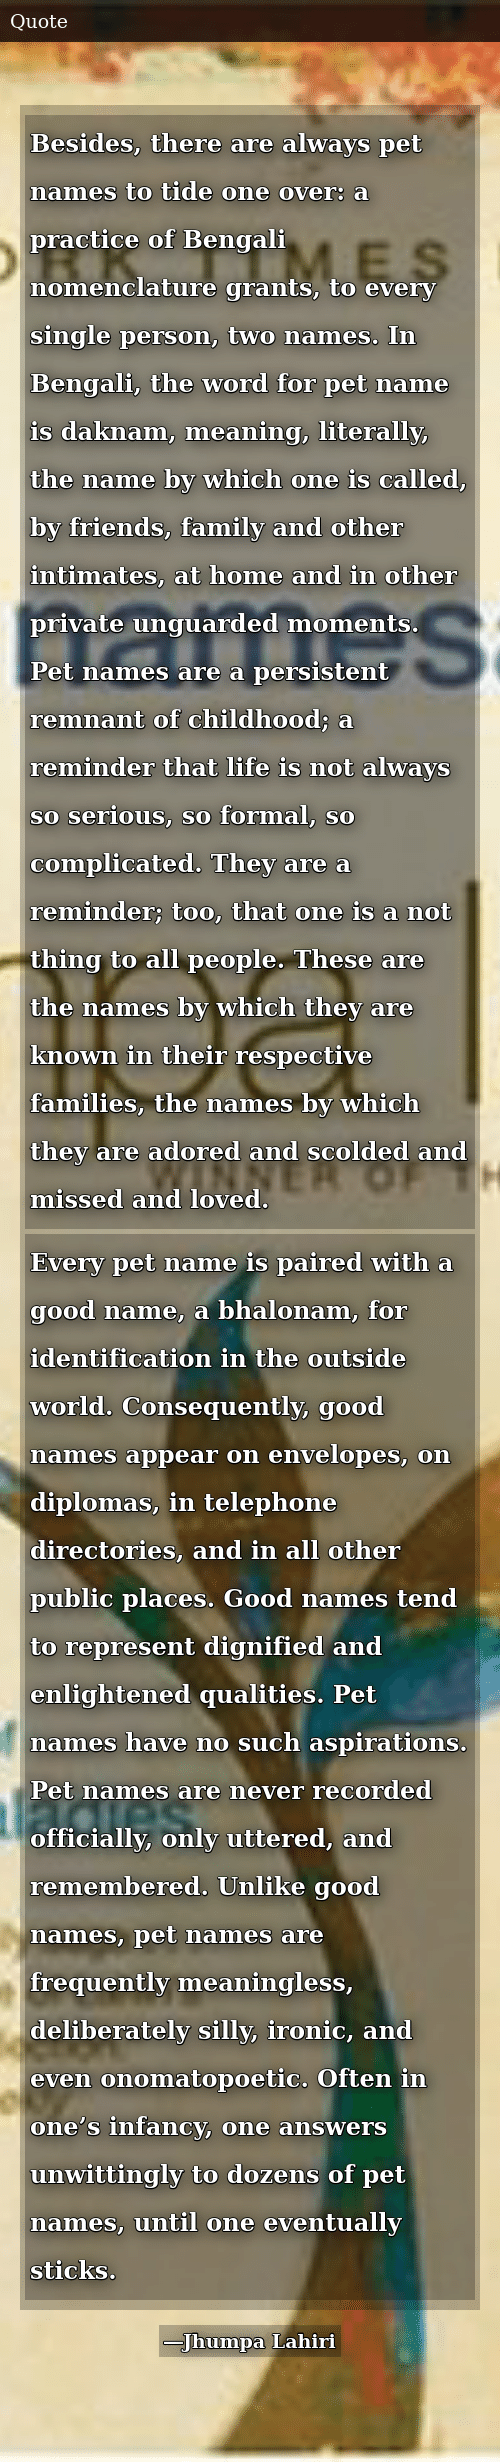 Besides There Are Always Pet Names to Tide One Over a Practice of